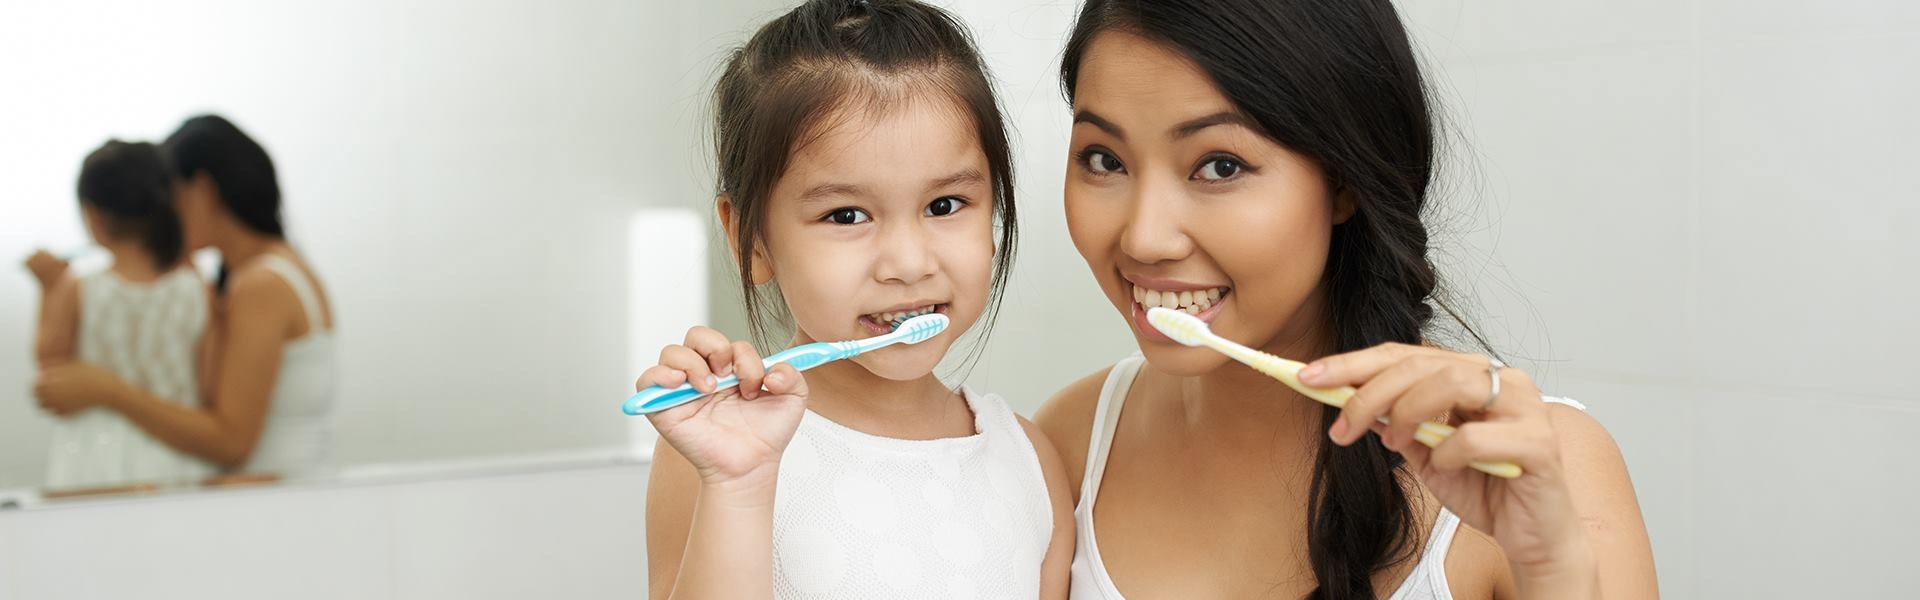 FRESH BREATH - Family Brushing